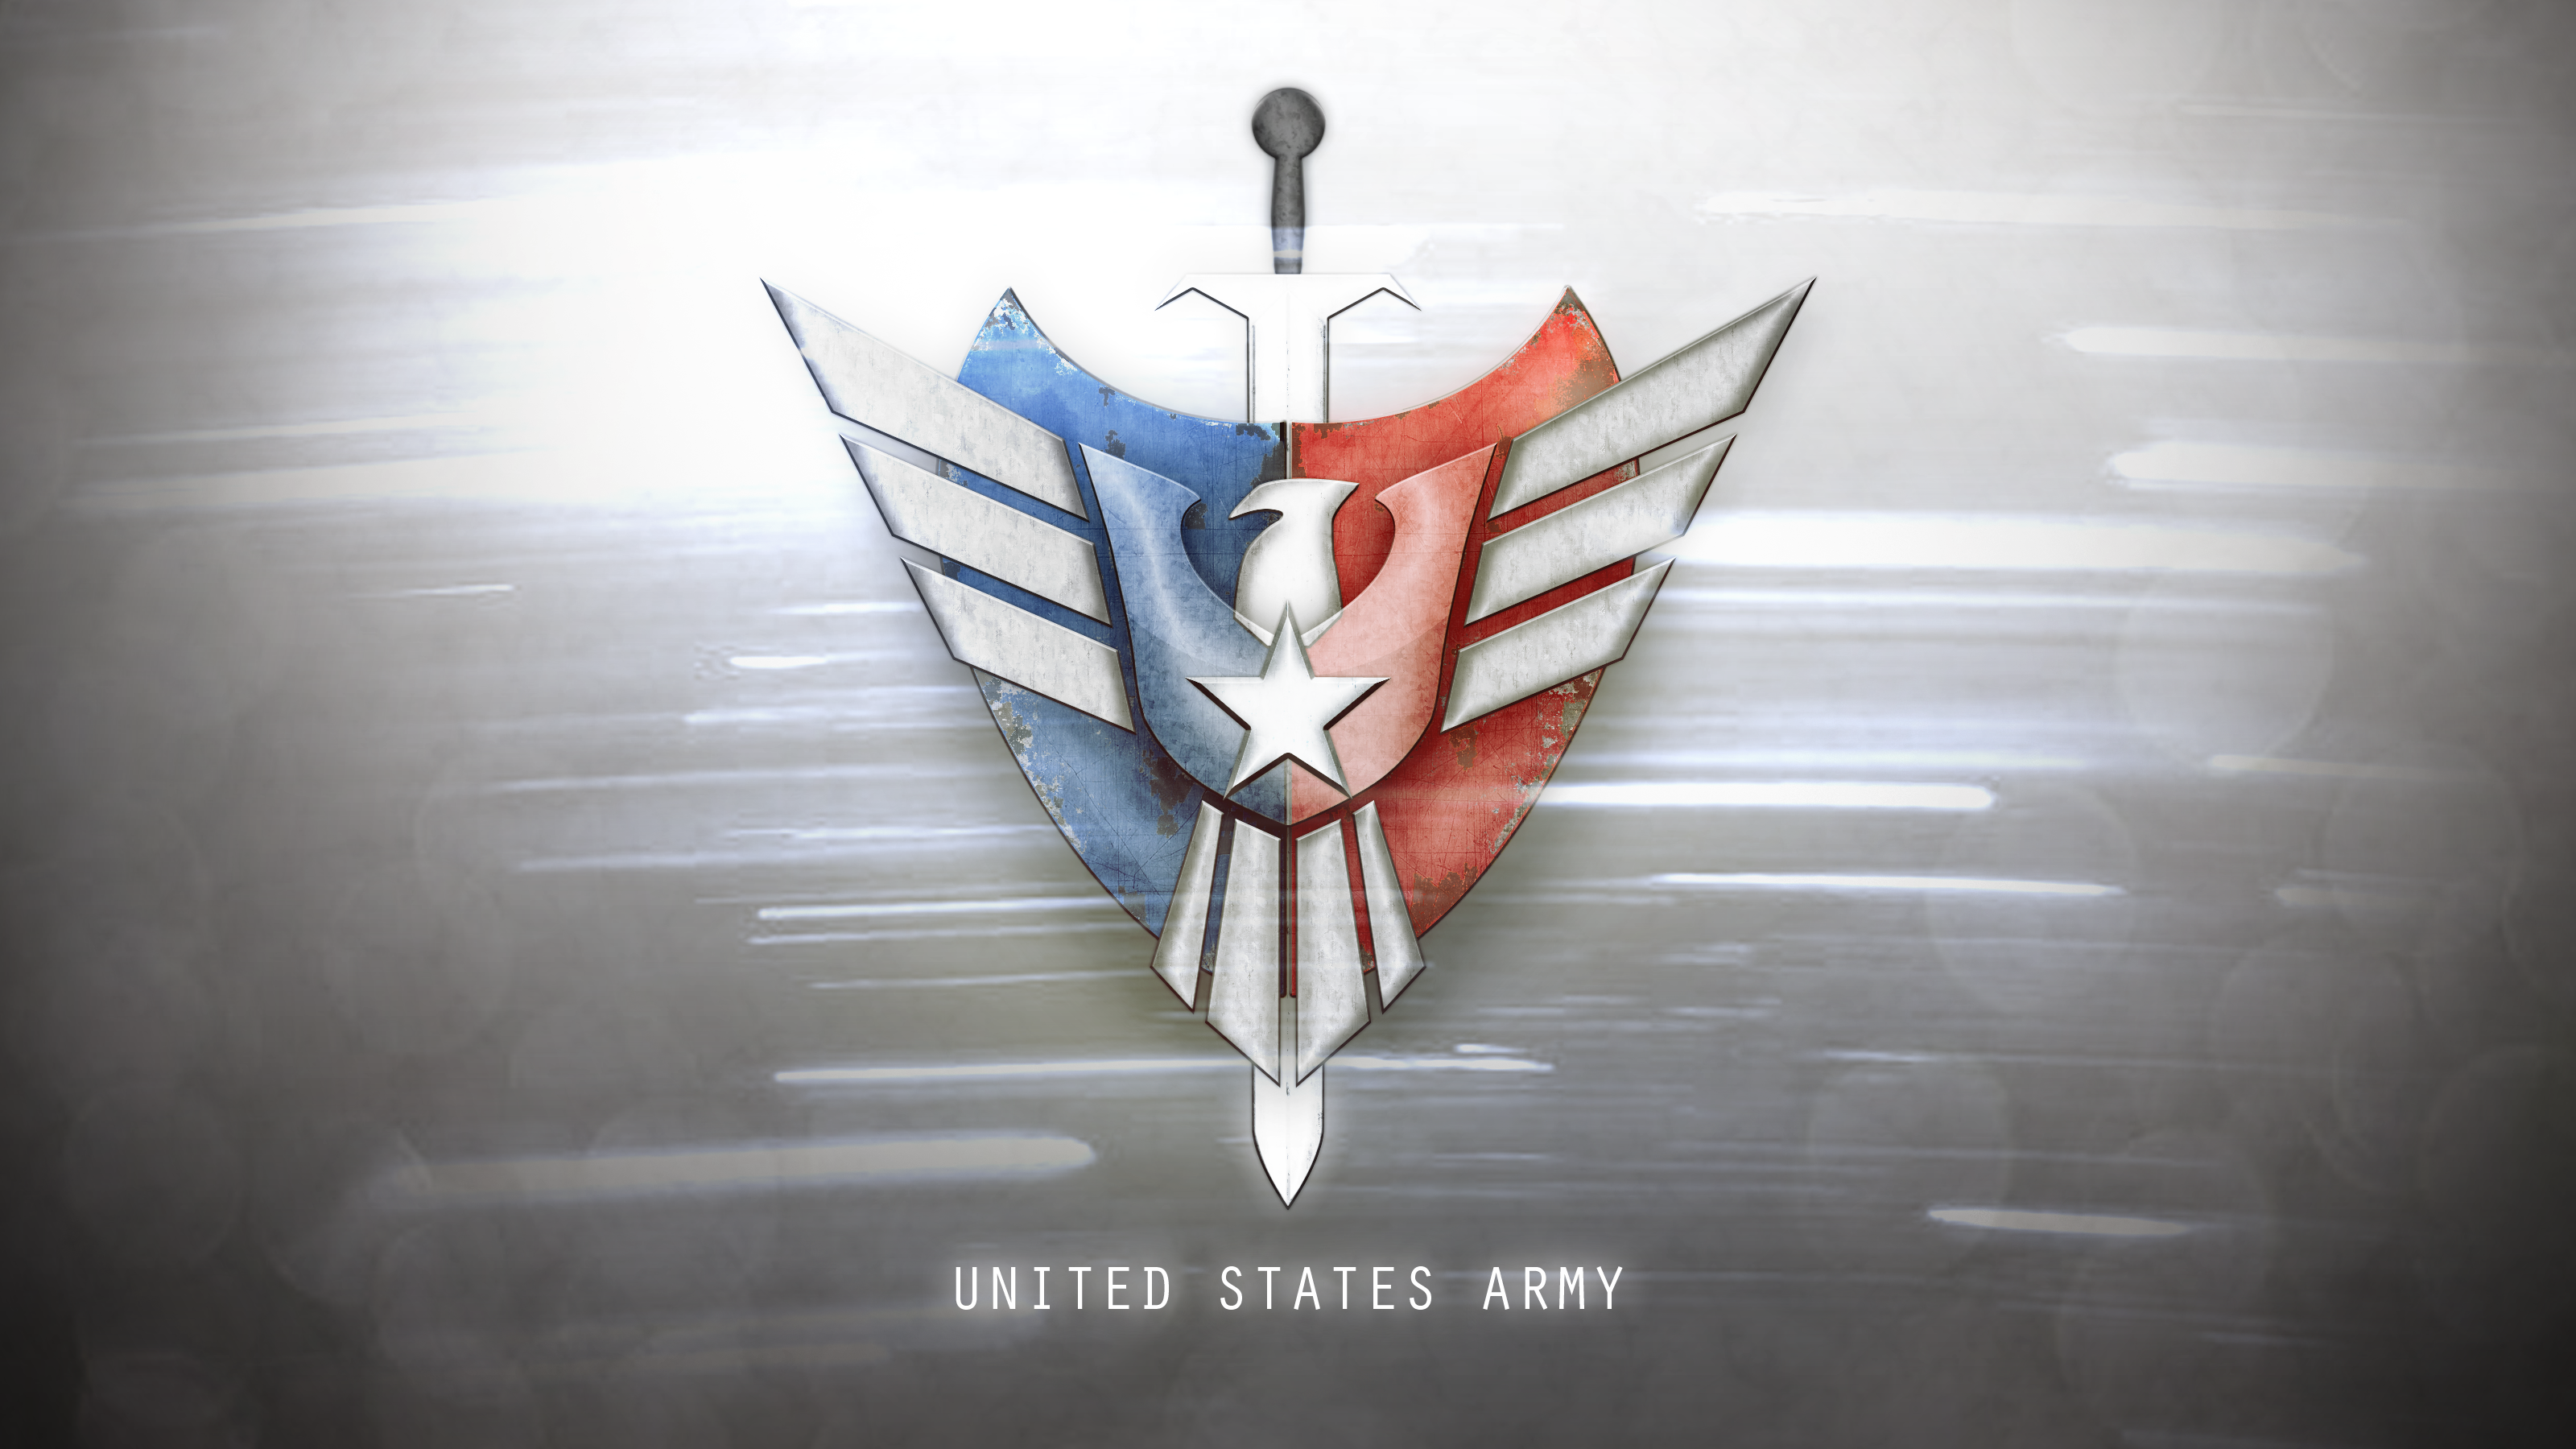 Us Army Logo Wallpaper United states army logo by 3200x1800